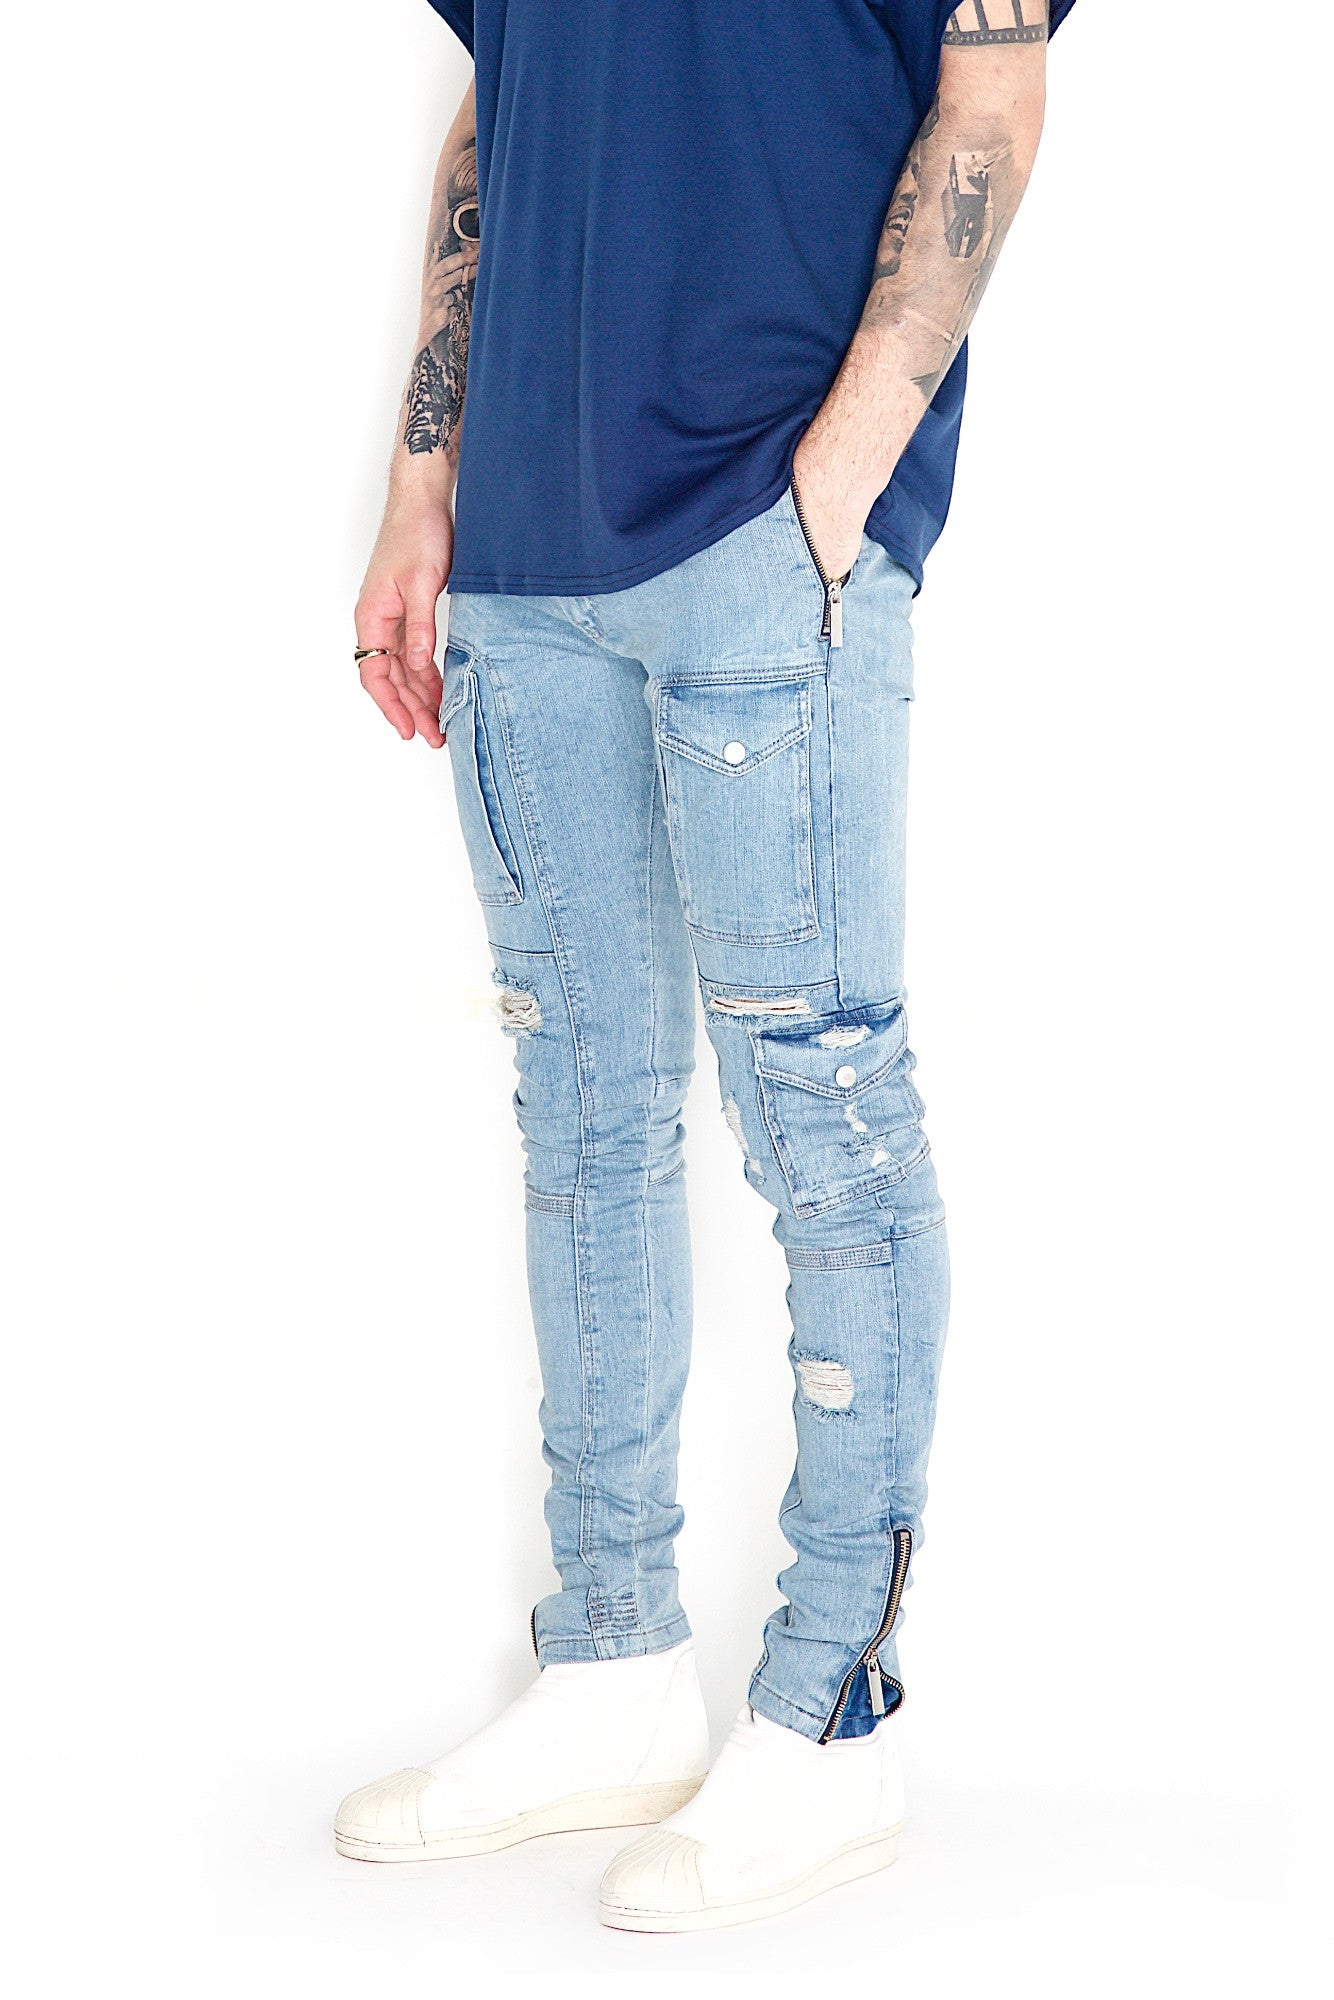 Kago Jeans Blue Distressed